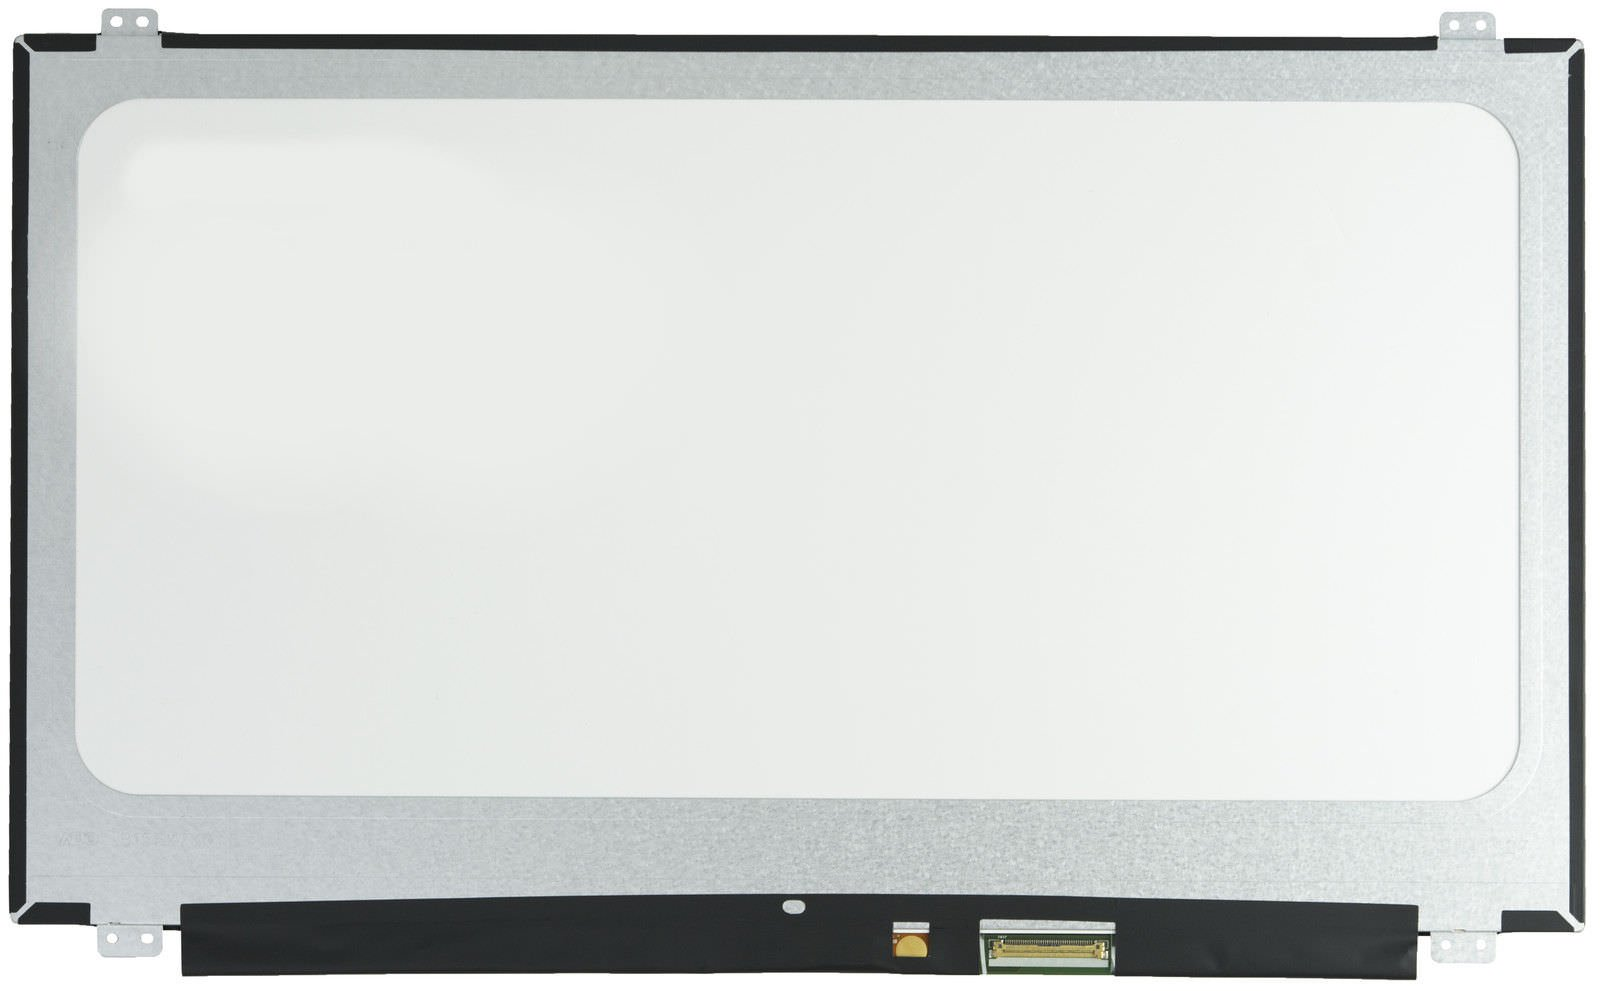 Generic LCD Replacement Display - FITS LG Display LP156WF9-SPK2 LP156WF9(SP)(K2) 15.6 FHD WUXGA 1080P eDP Slim IPS LCD LED Screen (Substitute Only) Non-Touch New by Generic (Image #2)